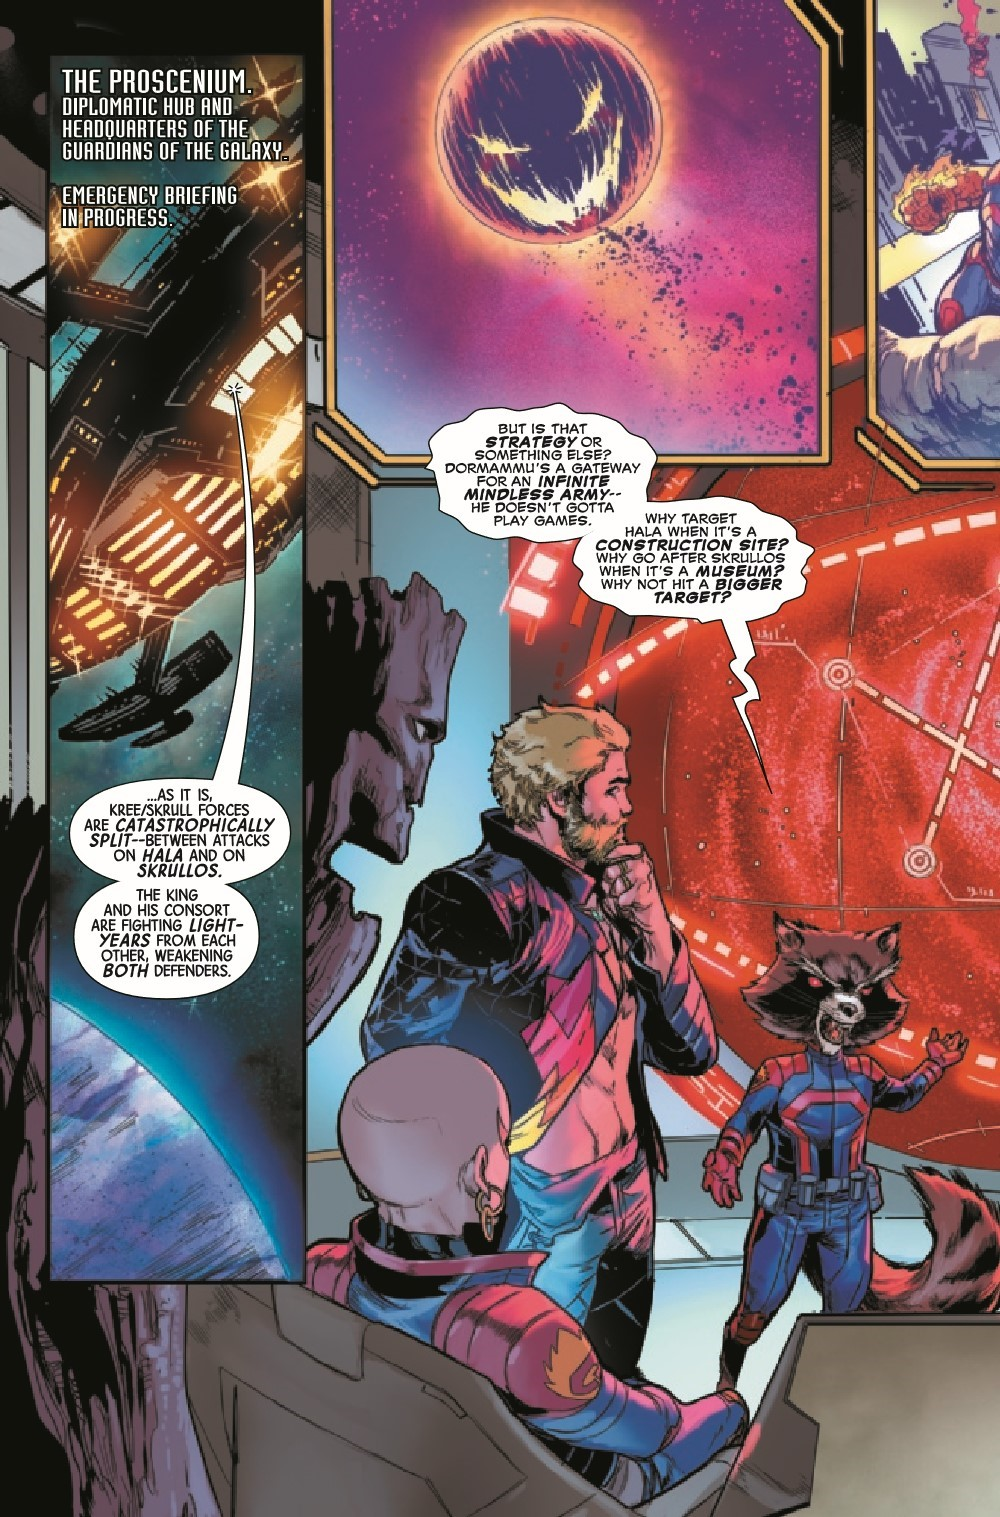 GARGAL2020017_Preview-4 ComicList Previews: GUARDIANS OF THE GALAXY #17